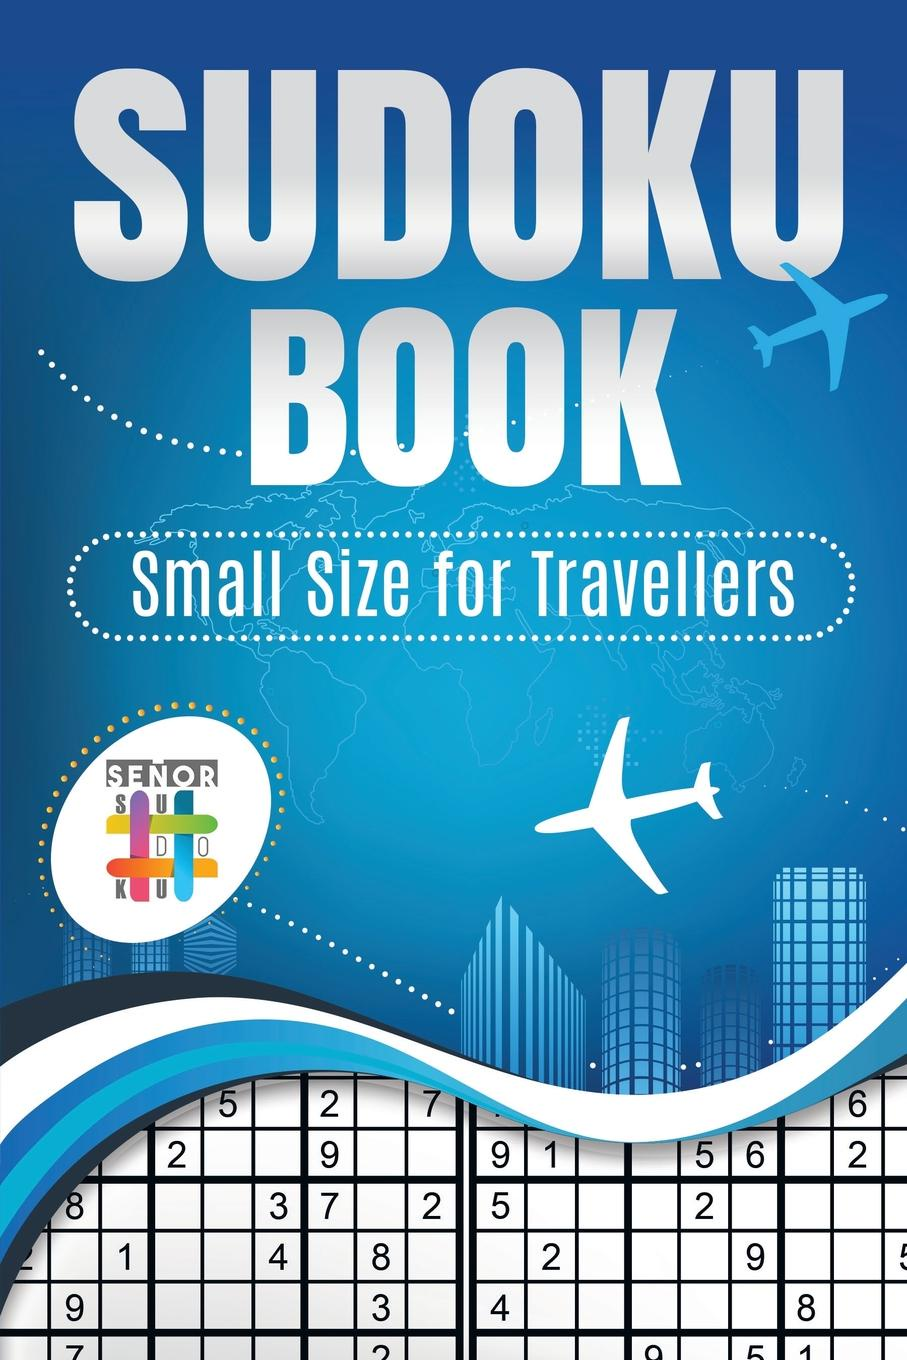 Senor Sudoku Book Small Size for Travellers